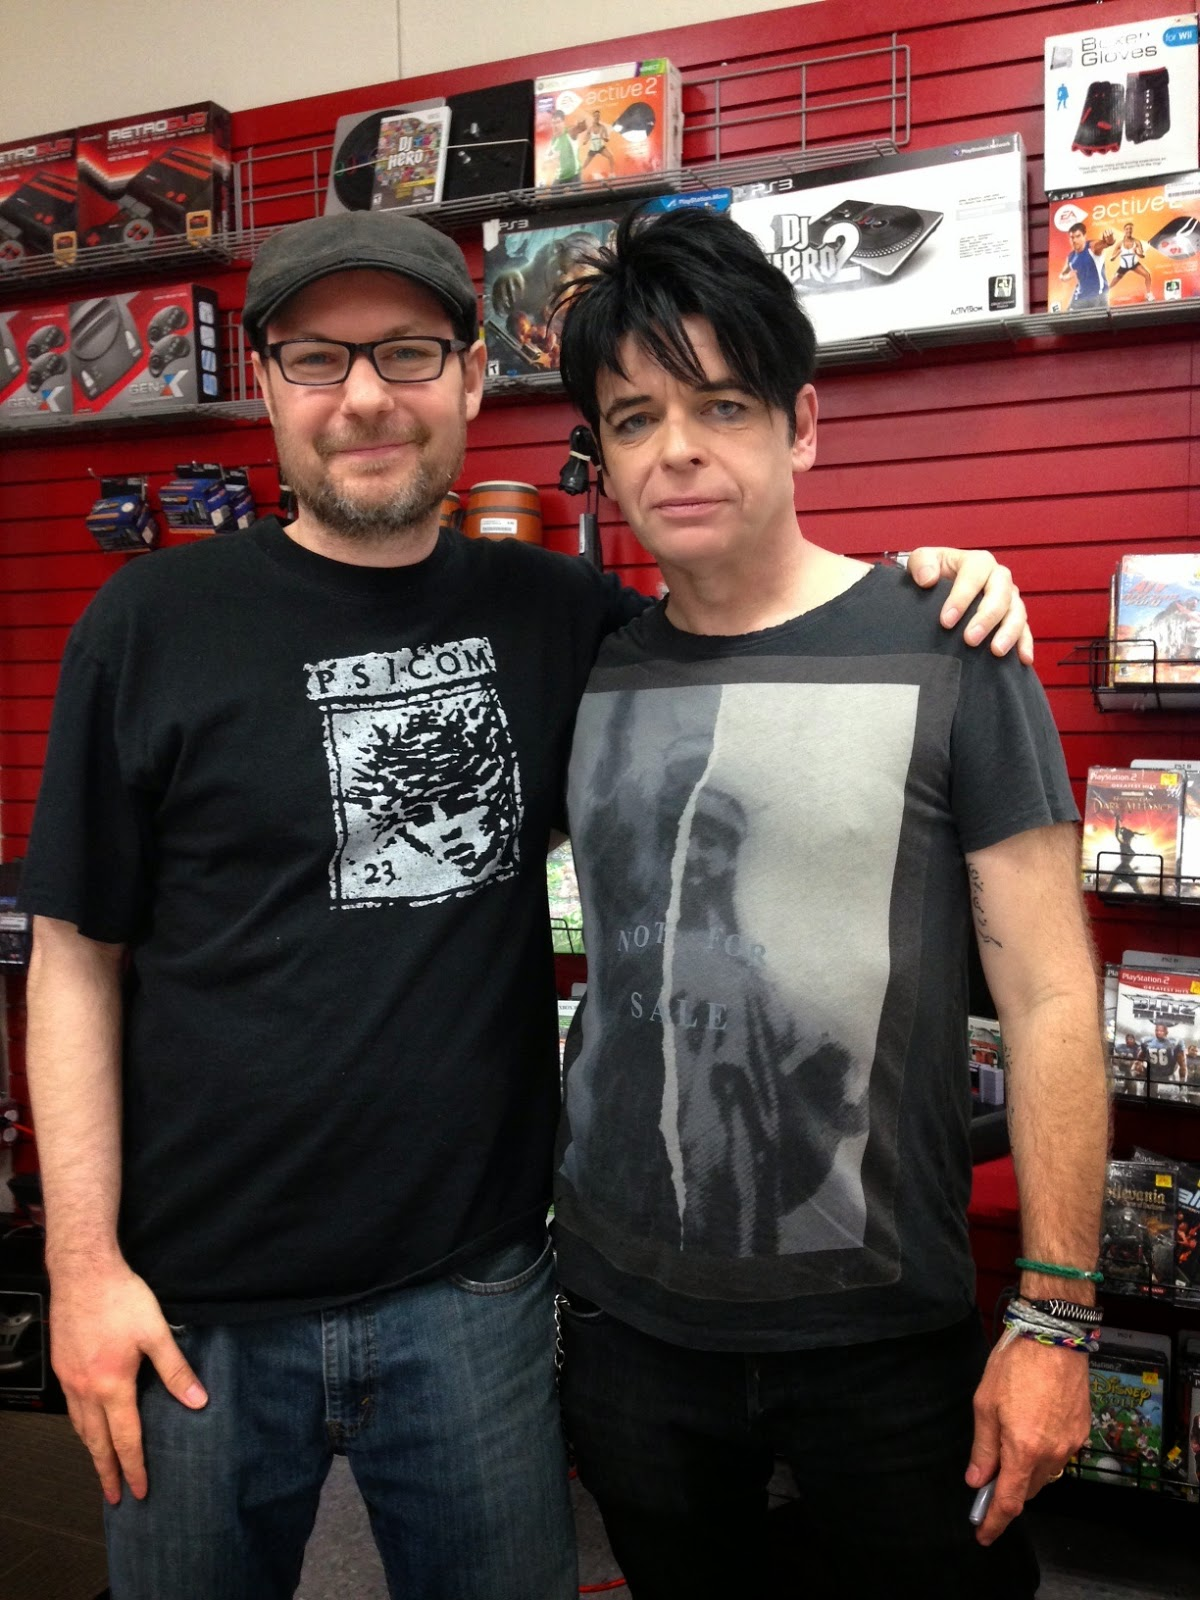 Life on this planet friday on the turntable gary numan splinter me and gary numan m4hsunfo